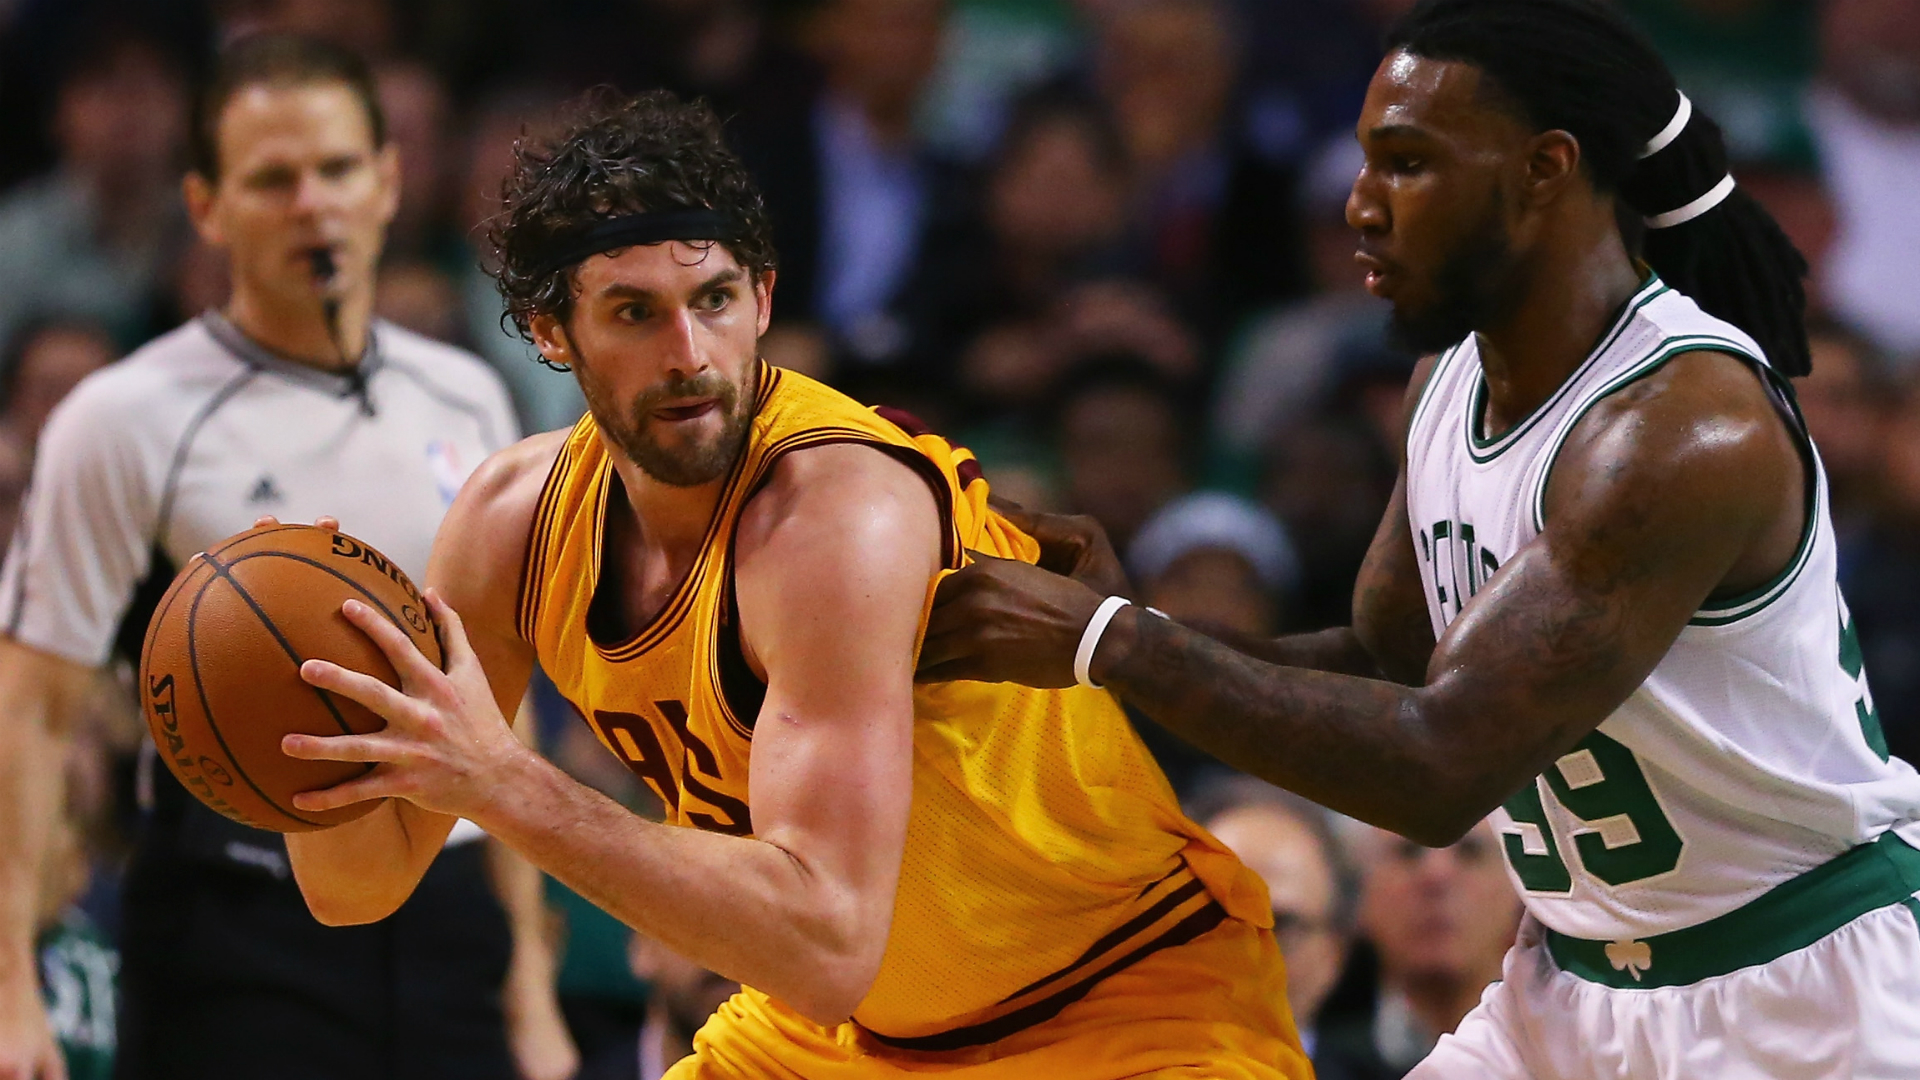 Kevin-Love-Jae-Crowder-Getty-FTR-021816